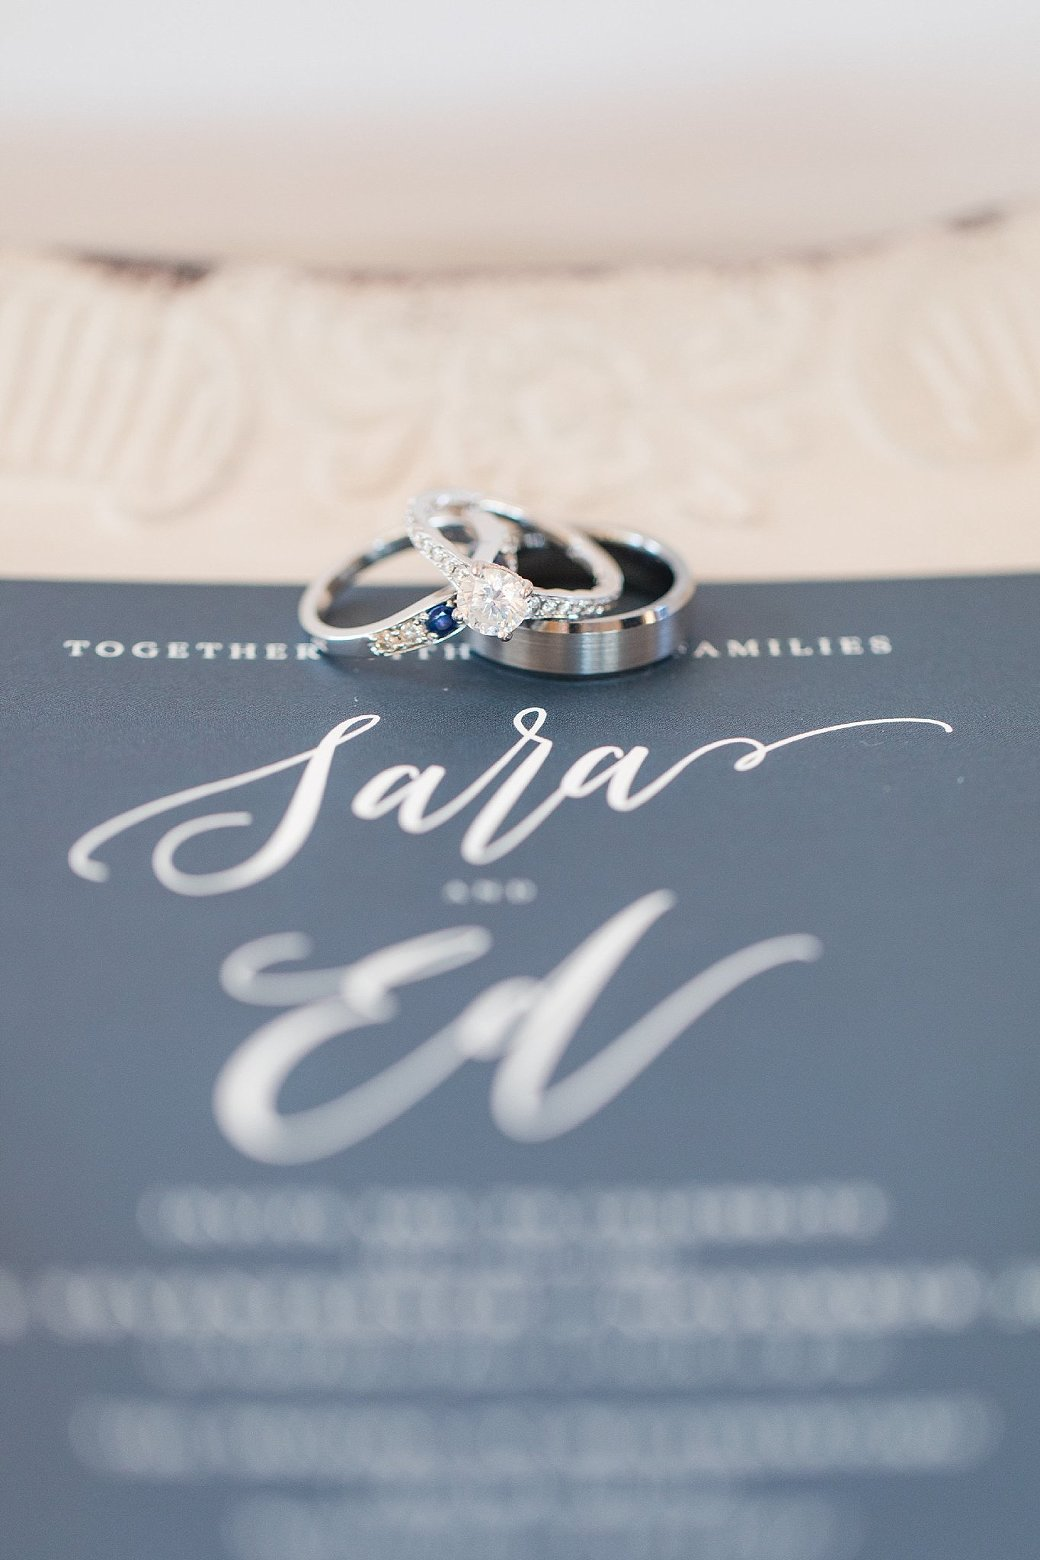 View More: http://meggietaylor.pass.us/edandsarahagenwedding